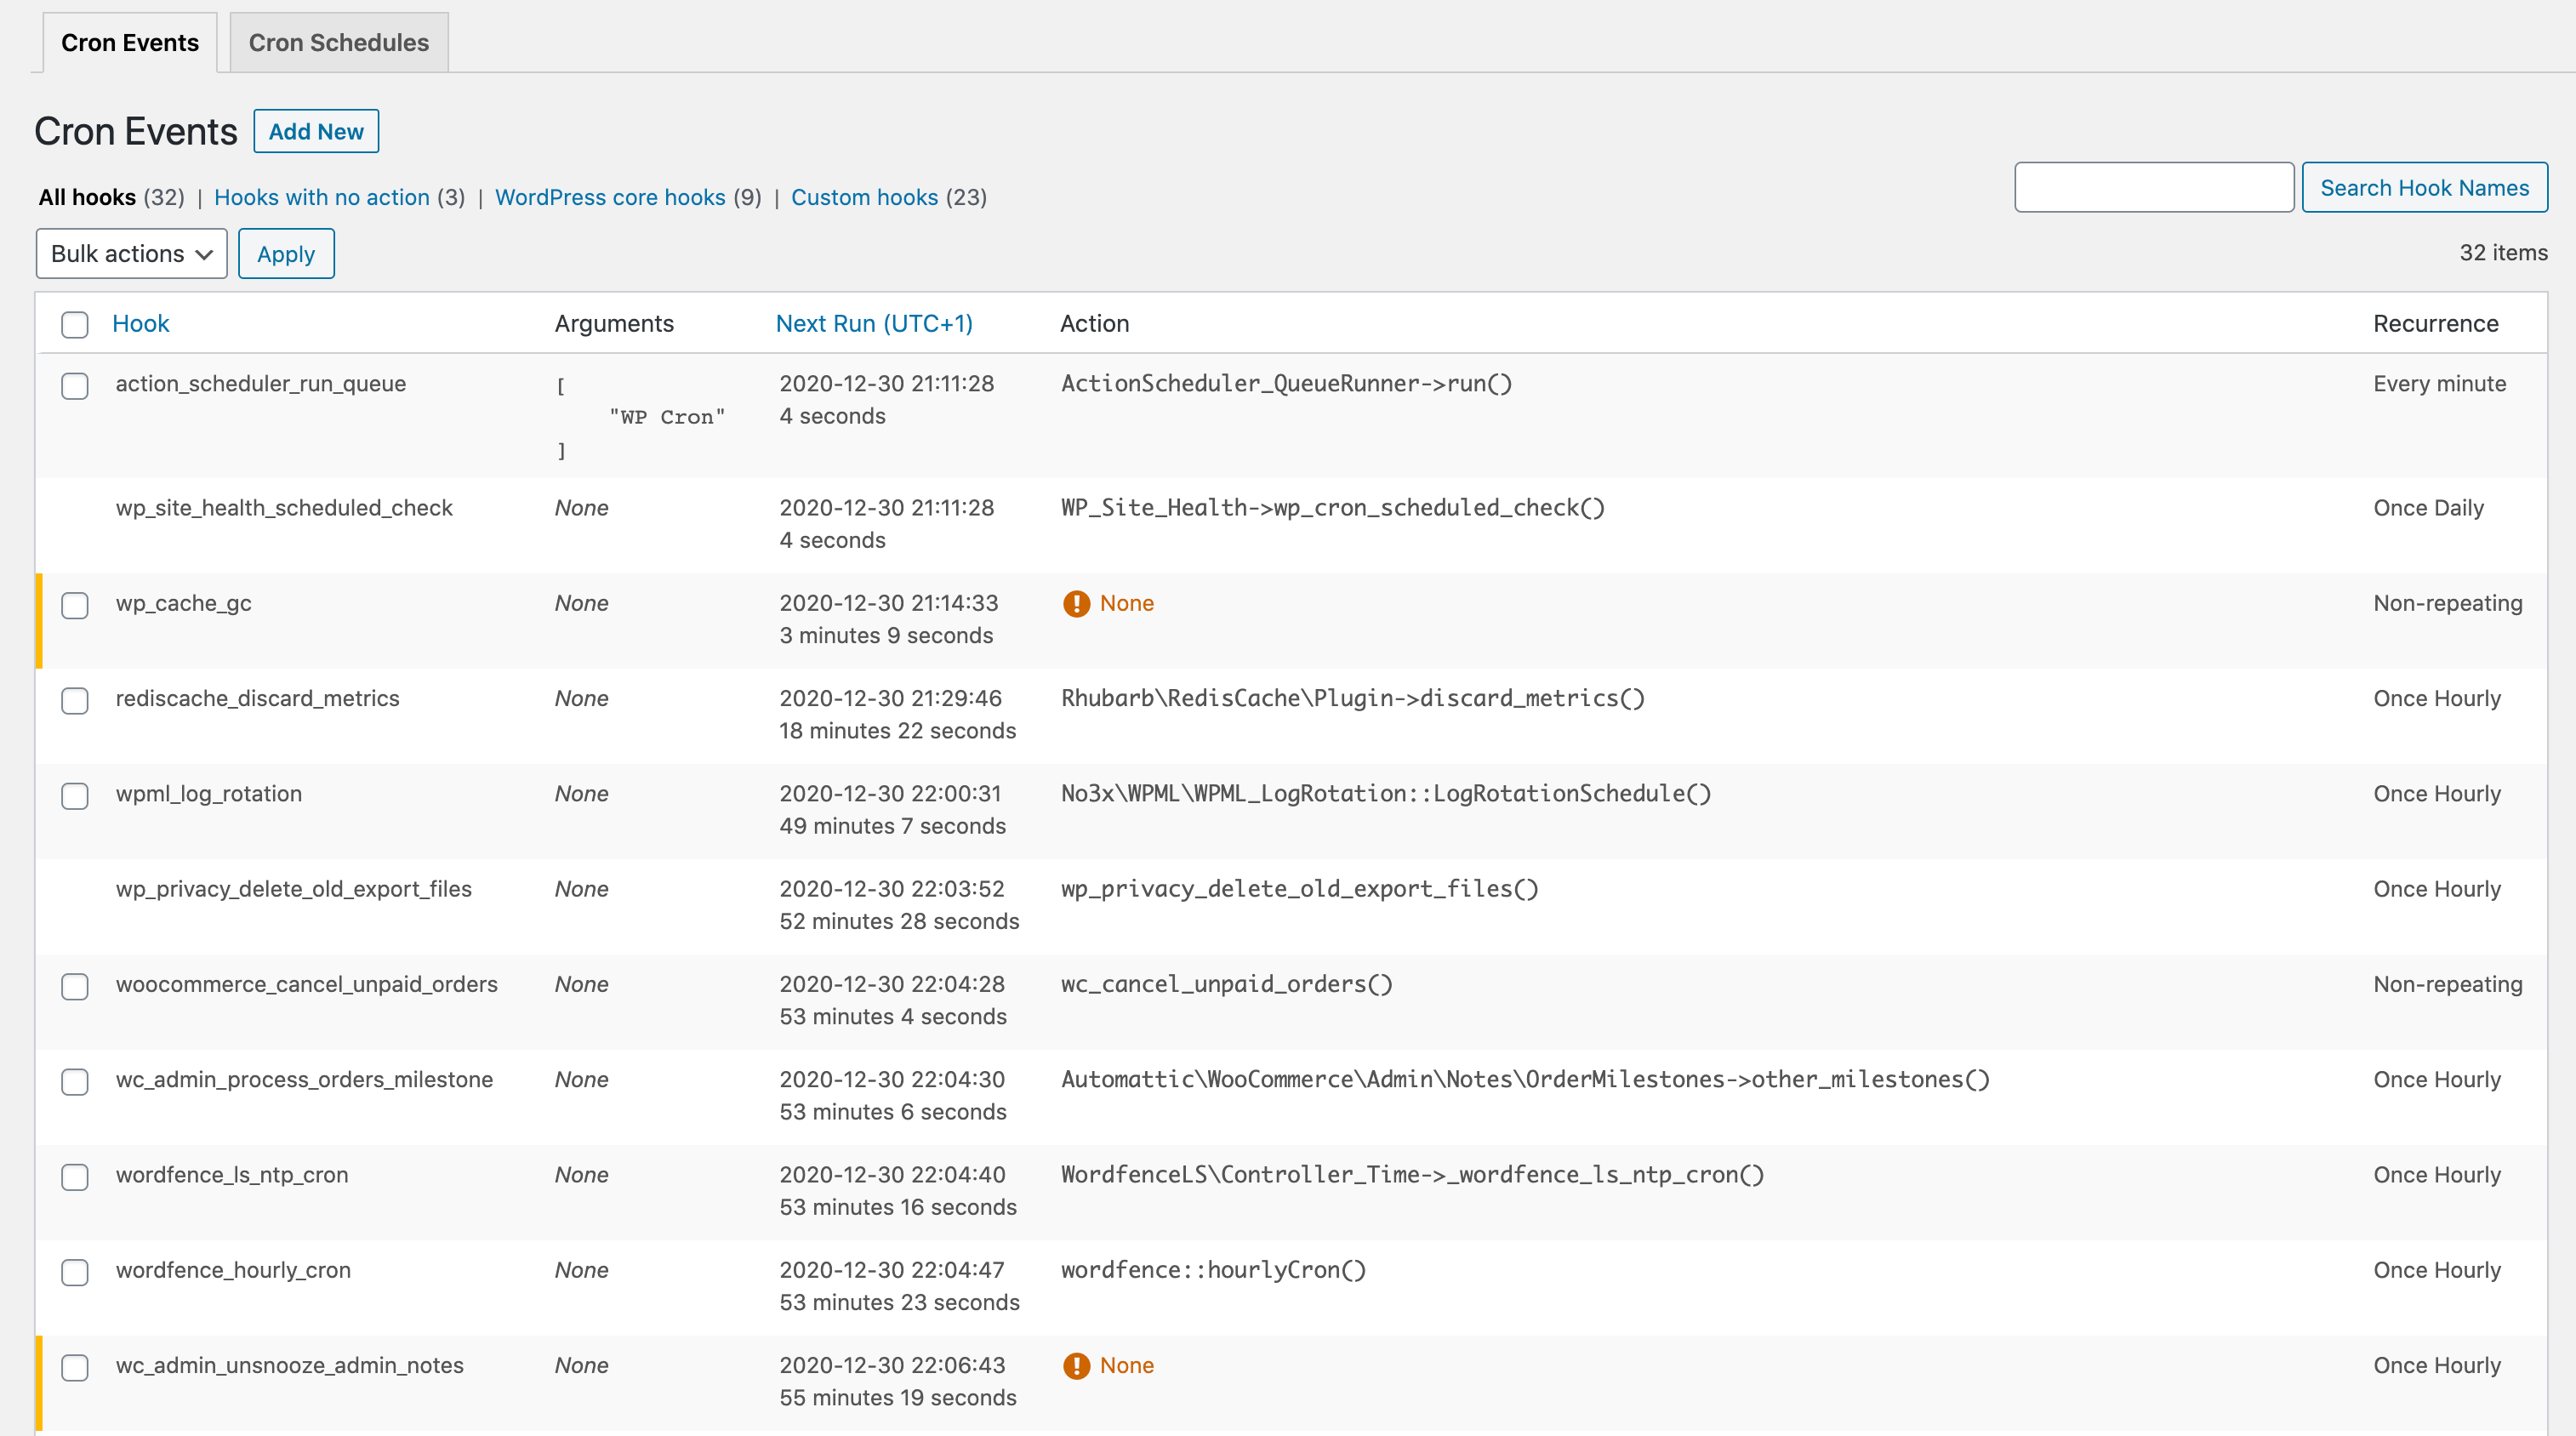 Cron events can be modified, deleted, and executed